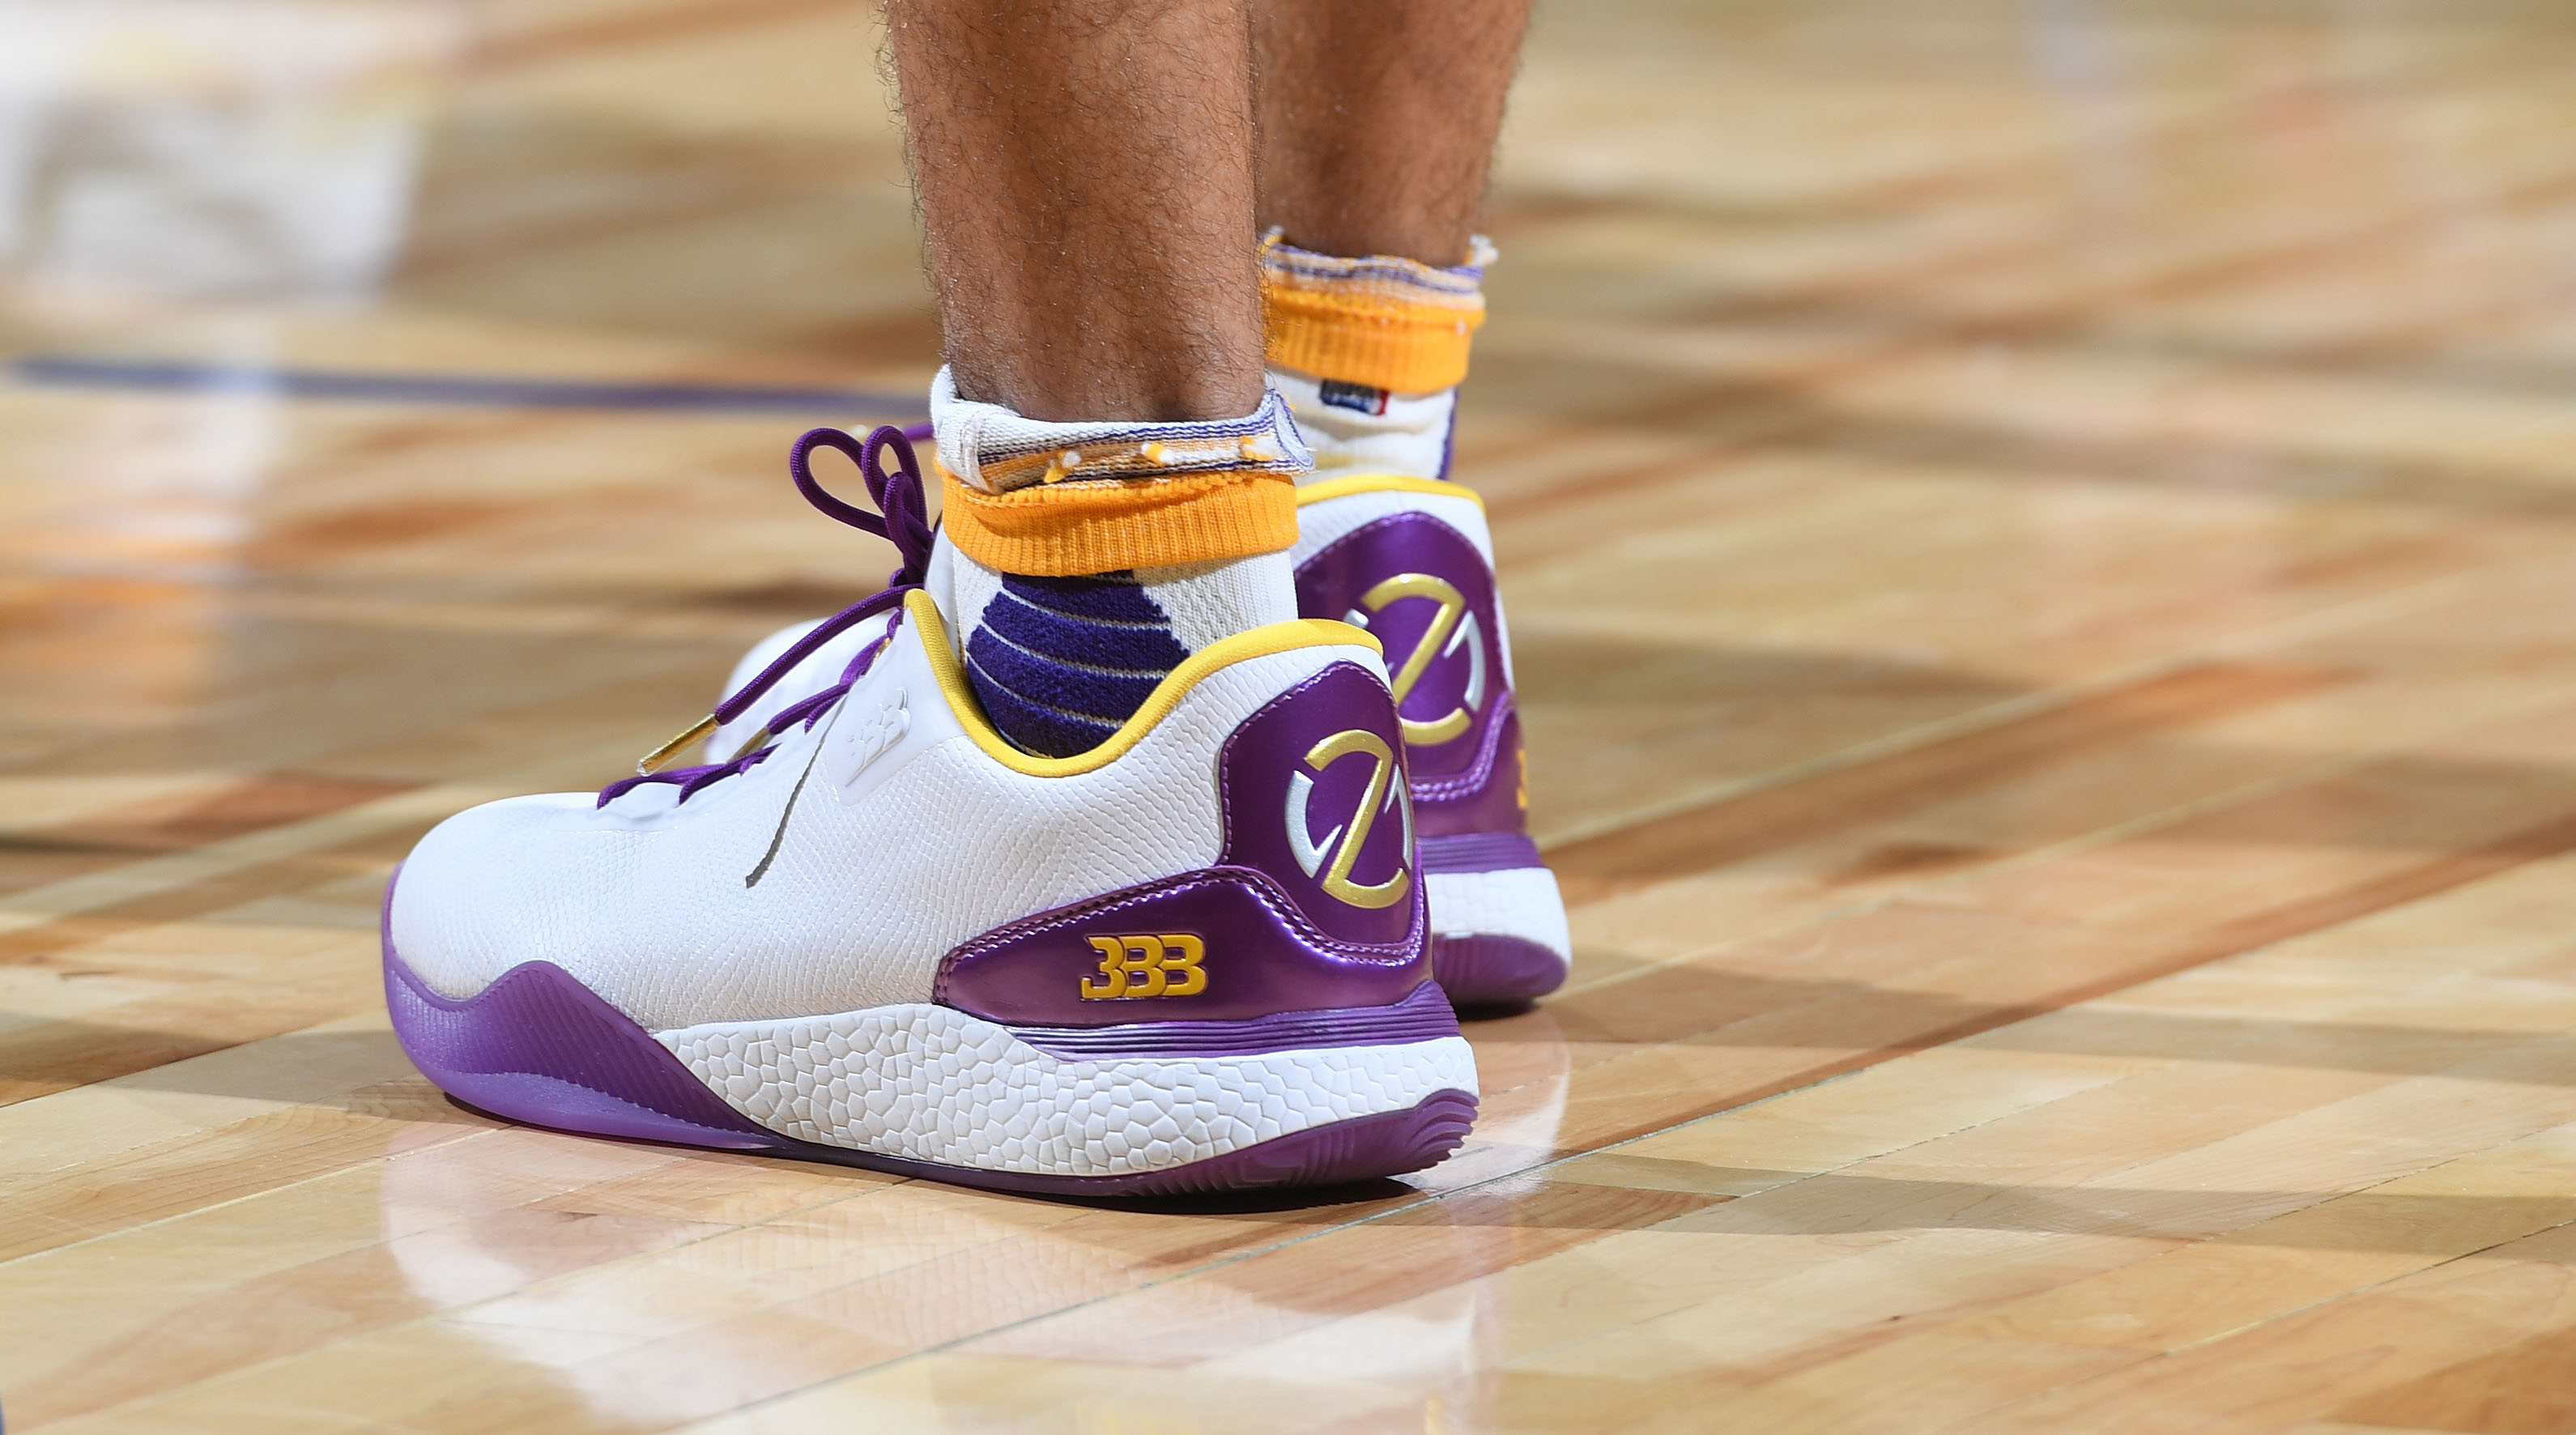 Lonzo Ball switch sneakers during Summer League